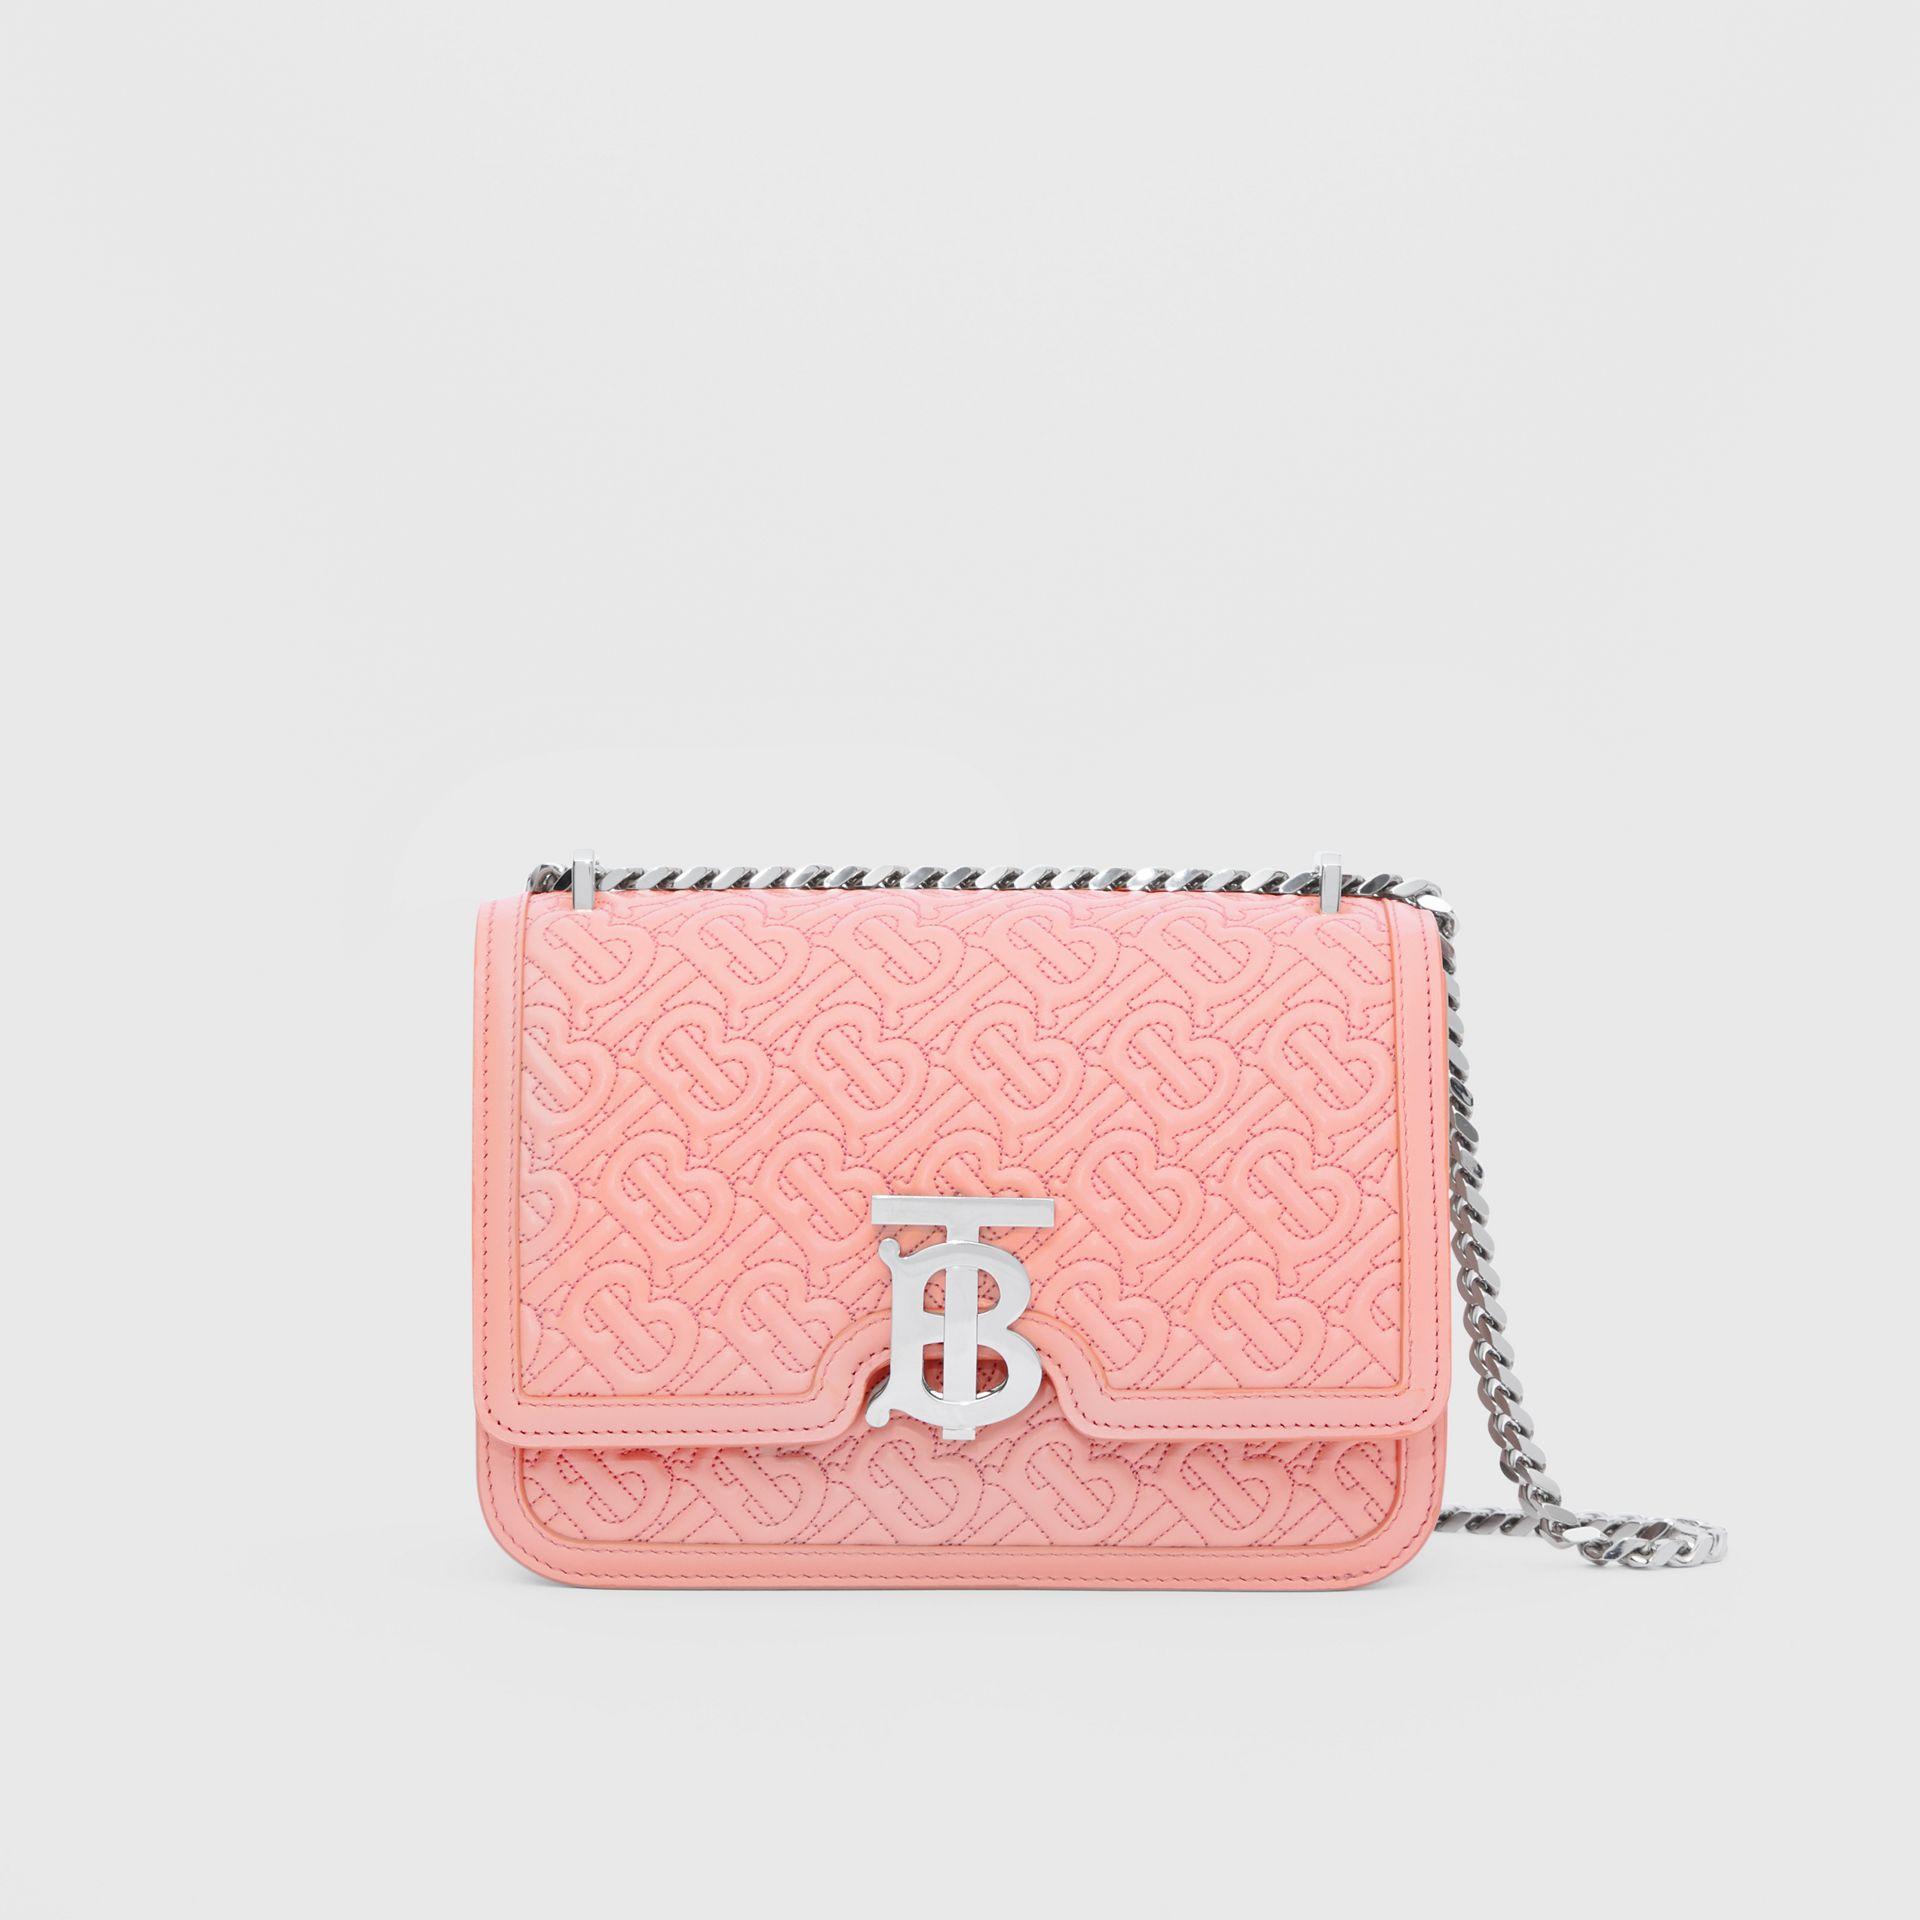 Small Quilted Monogram Lambskin TB Bag in Blush Pink - Women | Burberry - gallery image 0